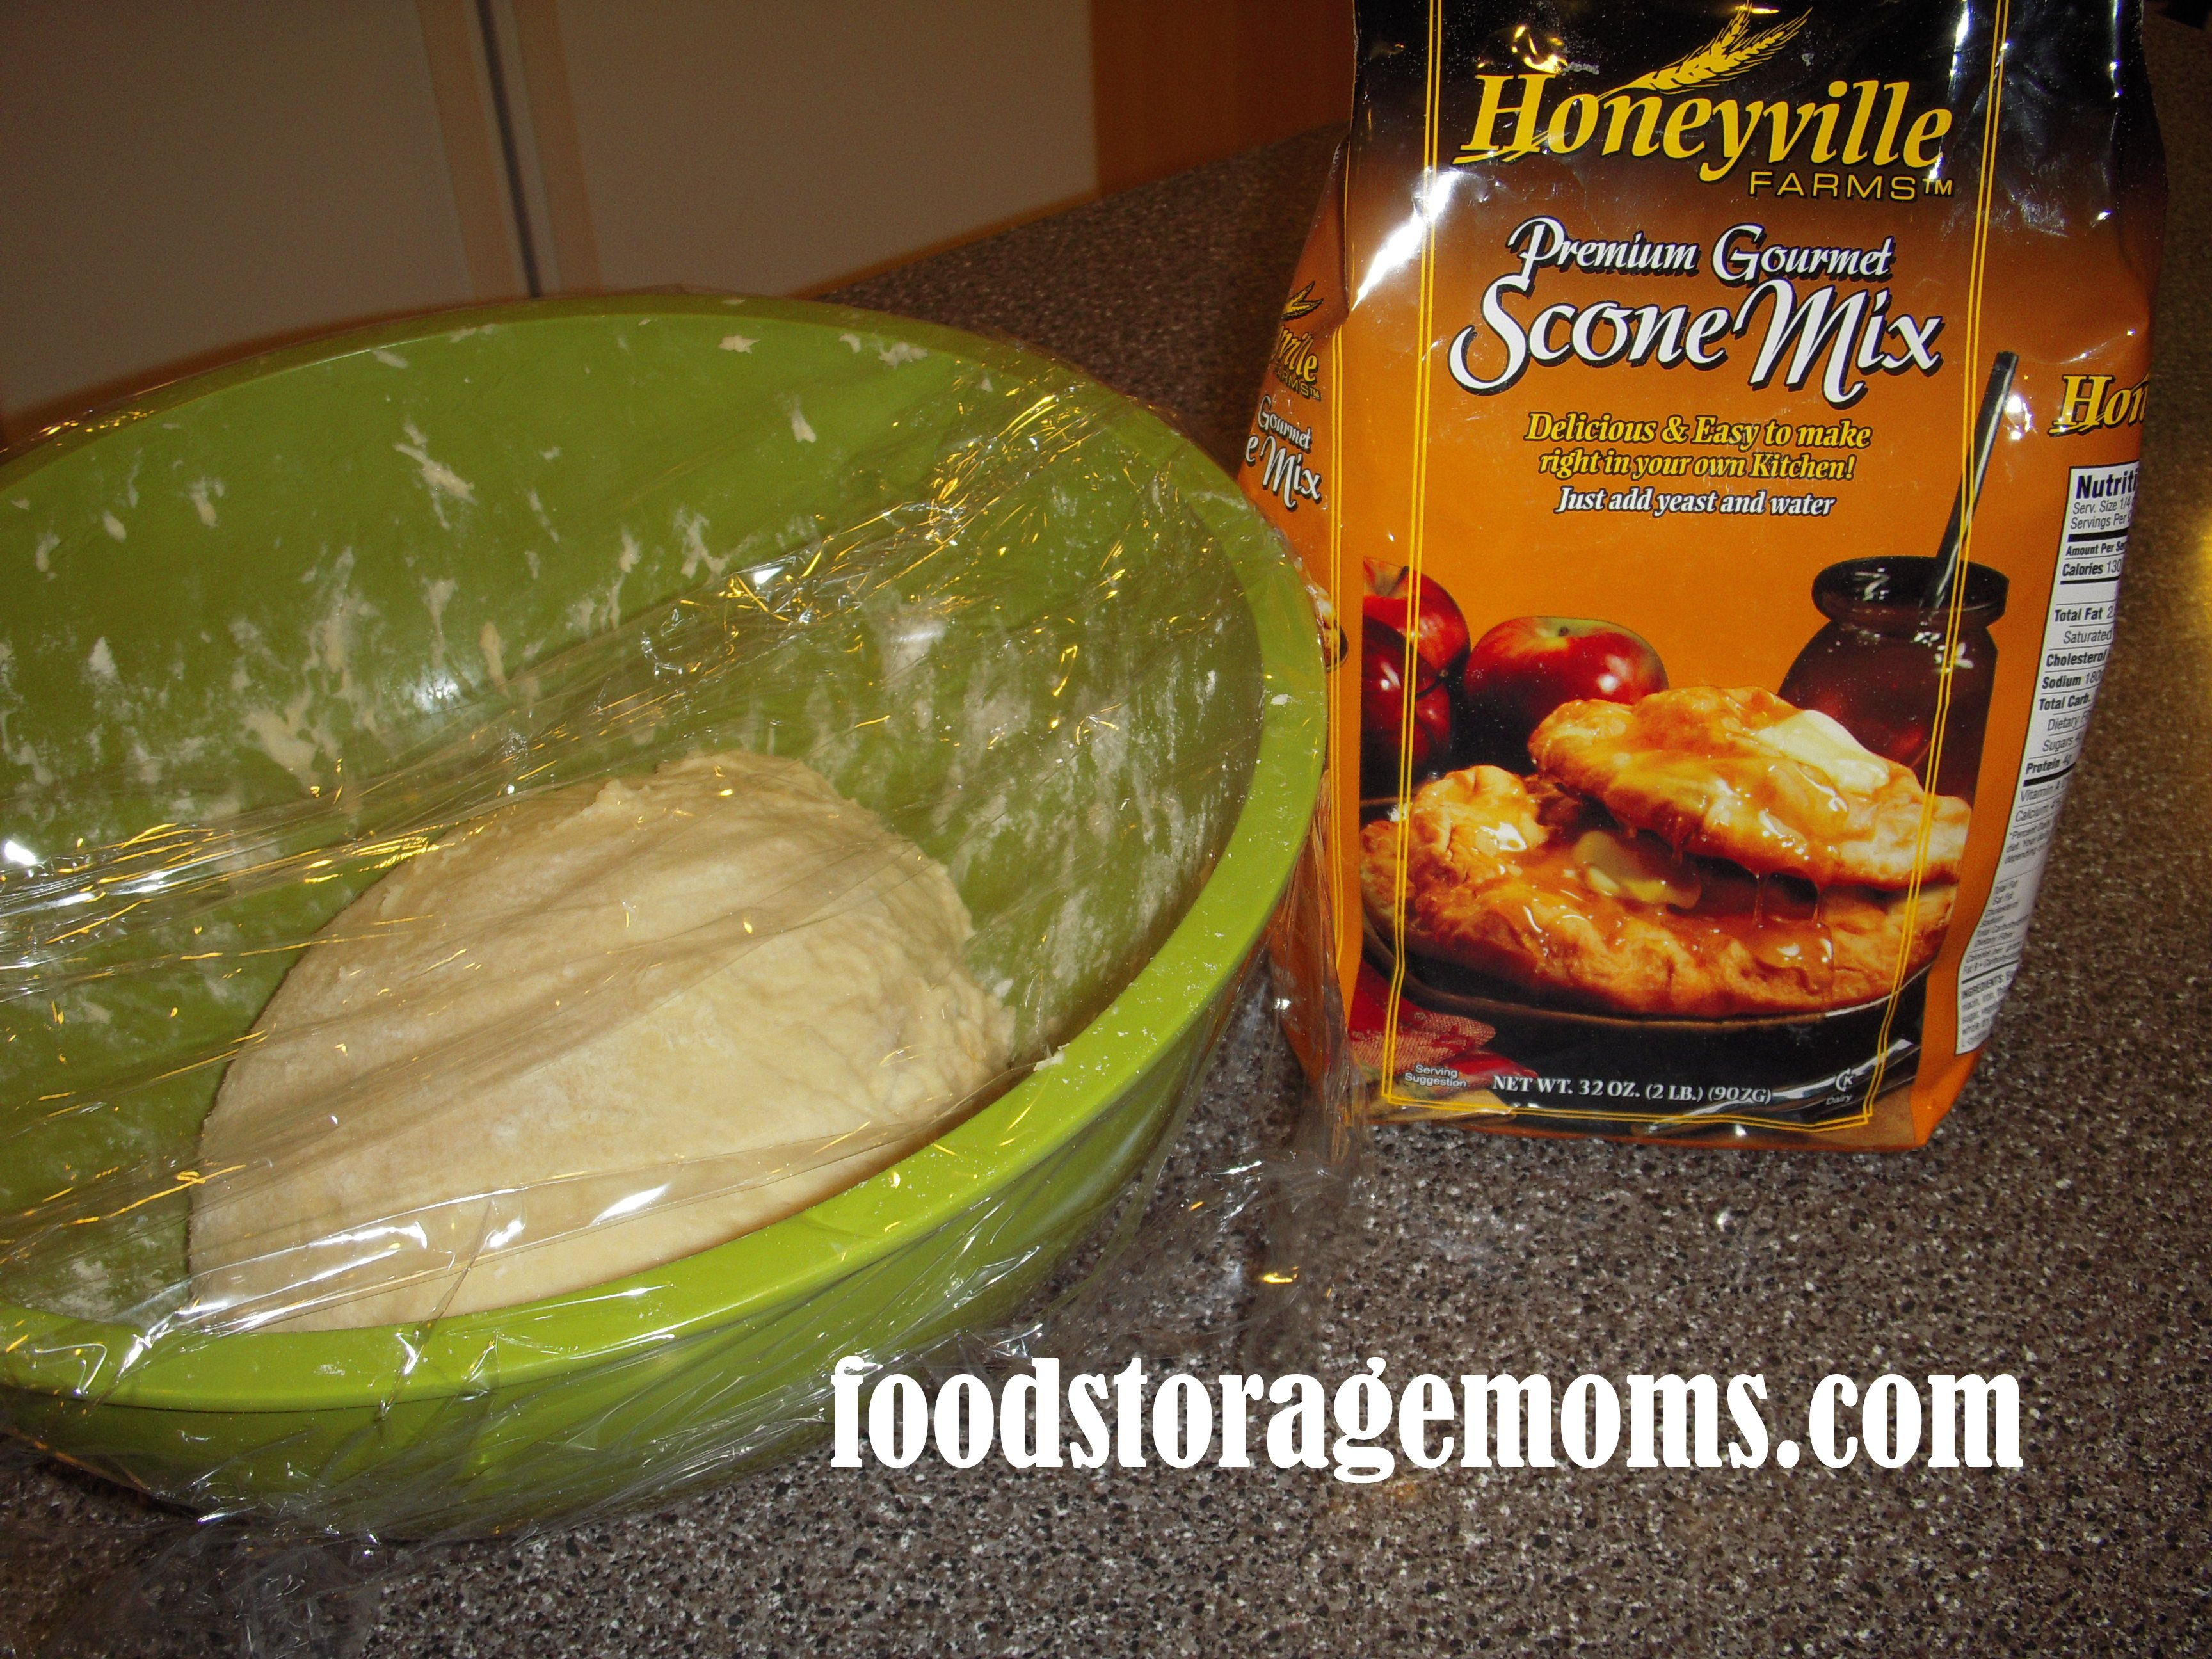 Food storage and honeyville farms in chandler arizona